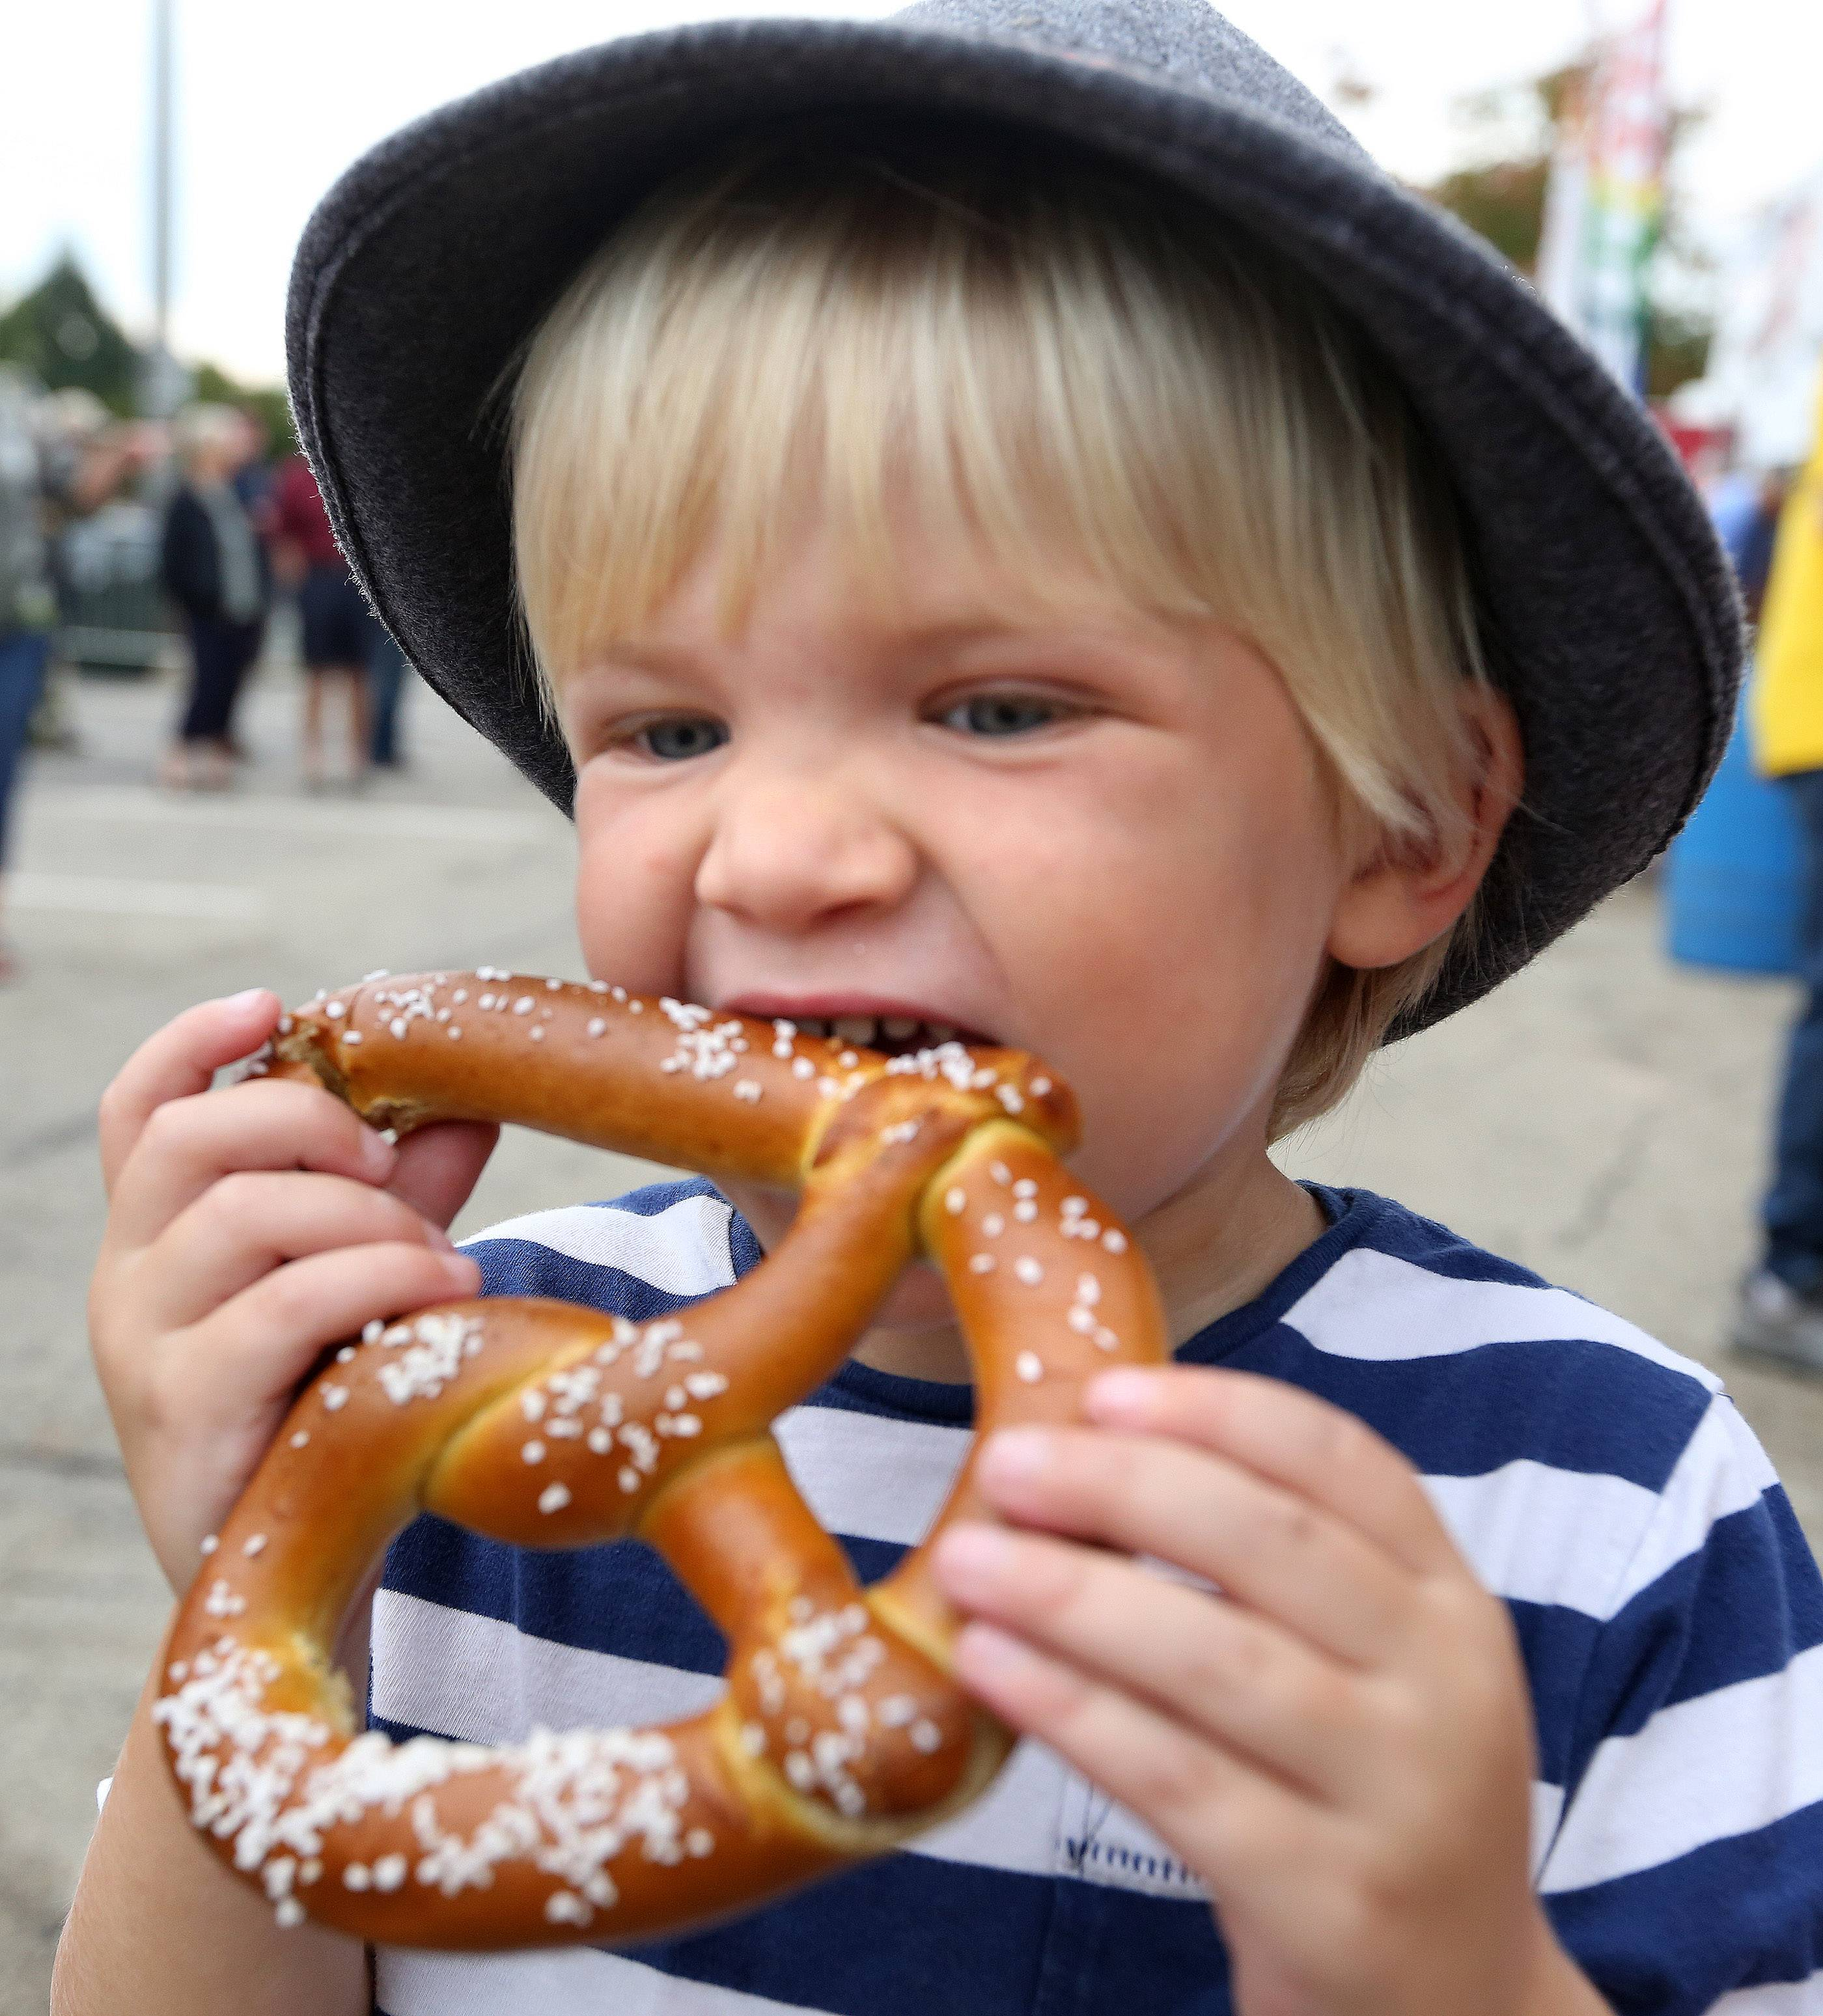 Luke Grybash, 3, of Palatine enjoys a pretzel while wearing his German hat at the 7th annual Rotary of Palatine Oktoberfest on Saturday in downtown, next to the Metra station.